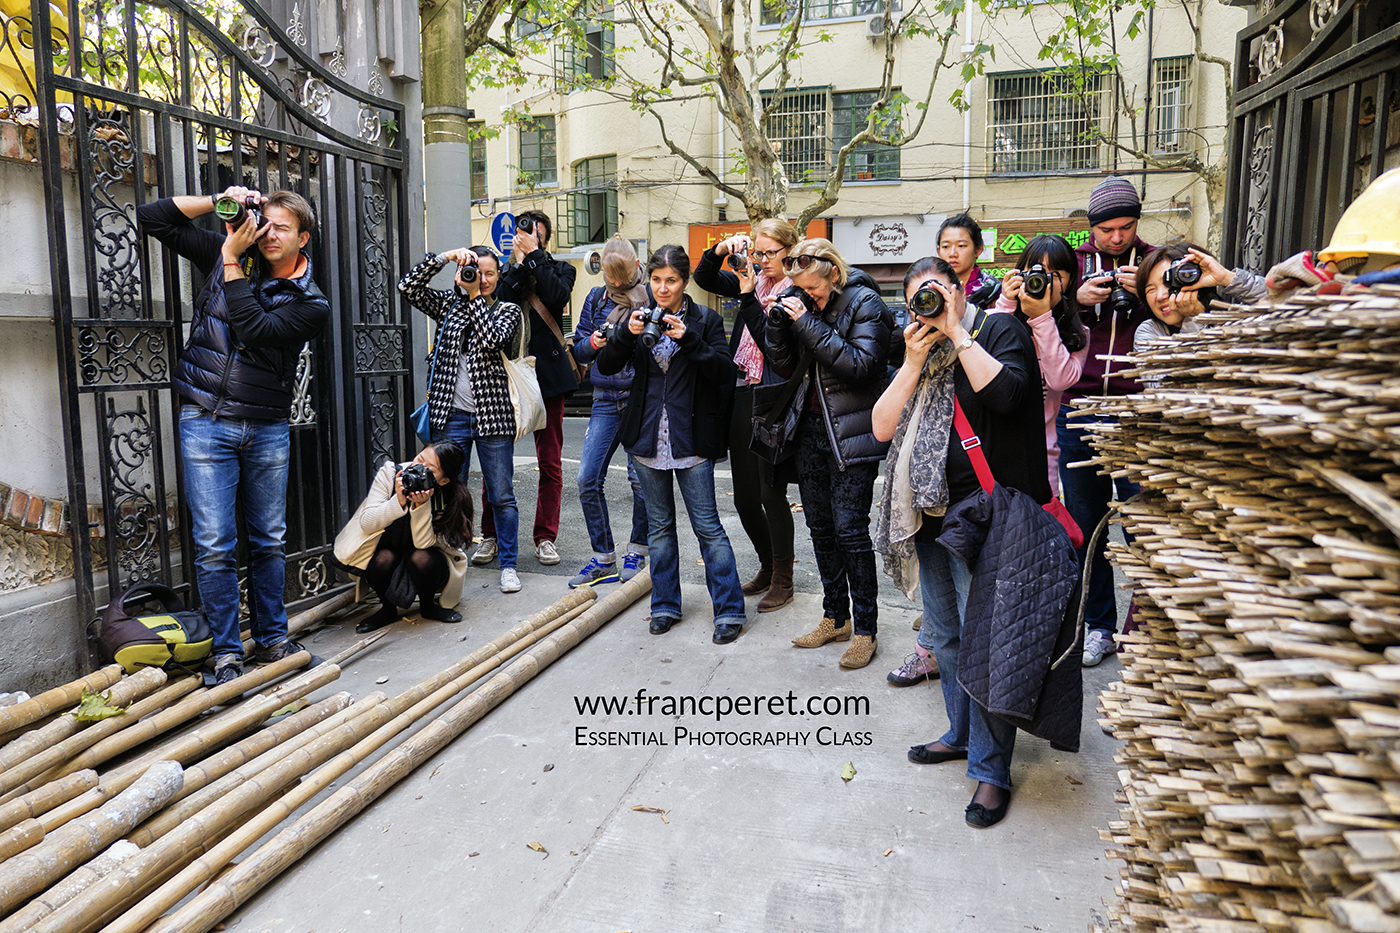 Essential Photography Class student during a street photo shoot in Shanghai